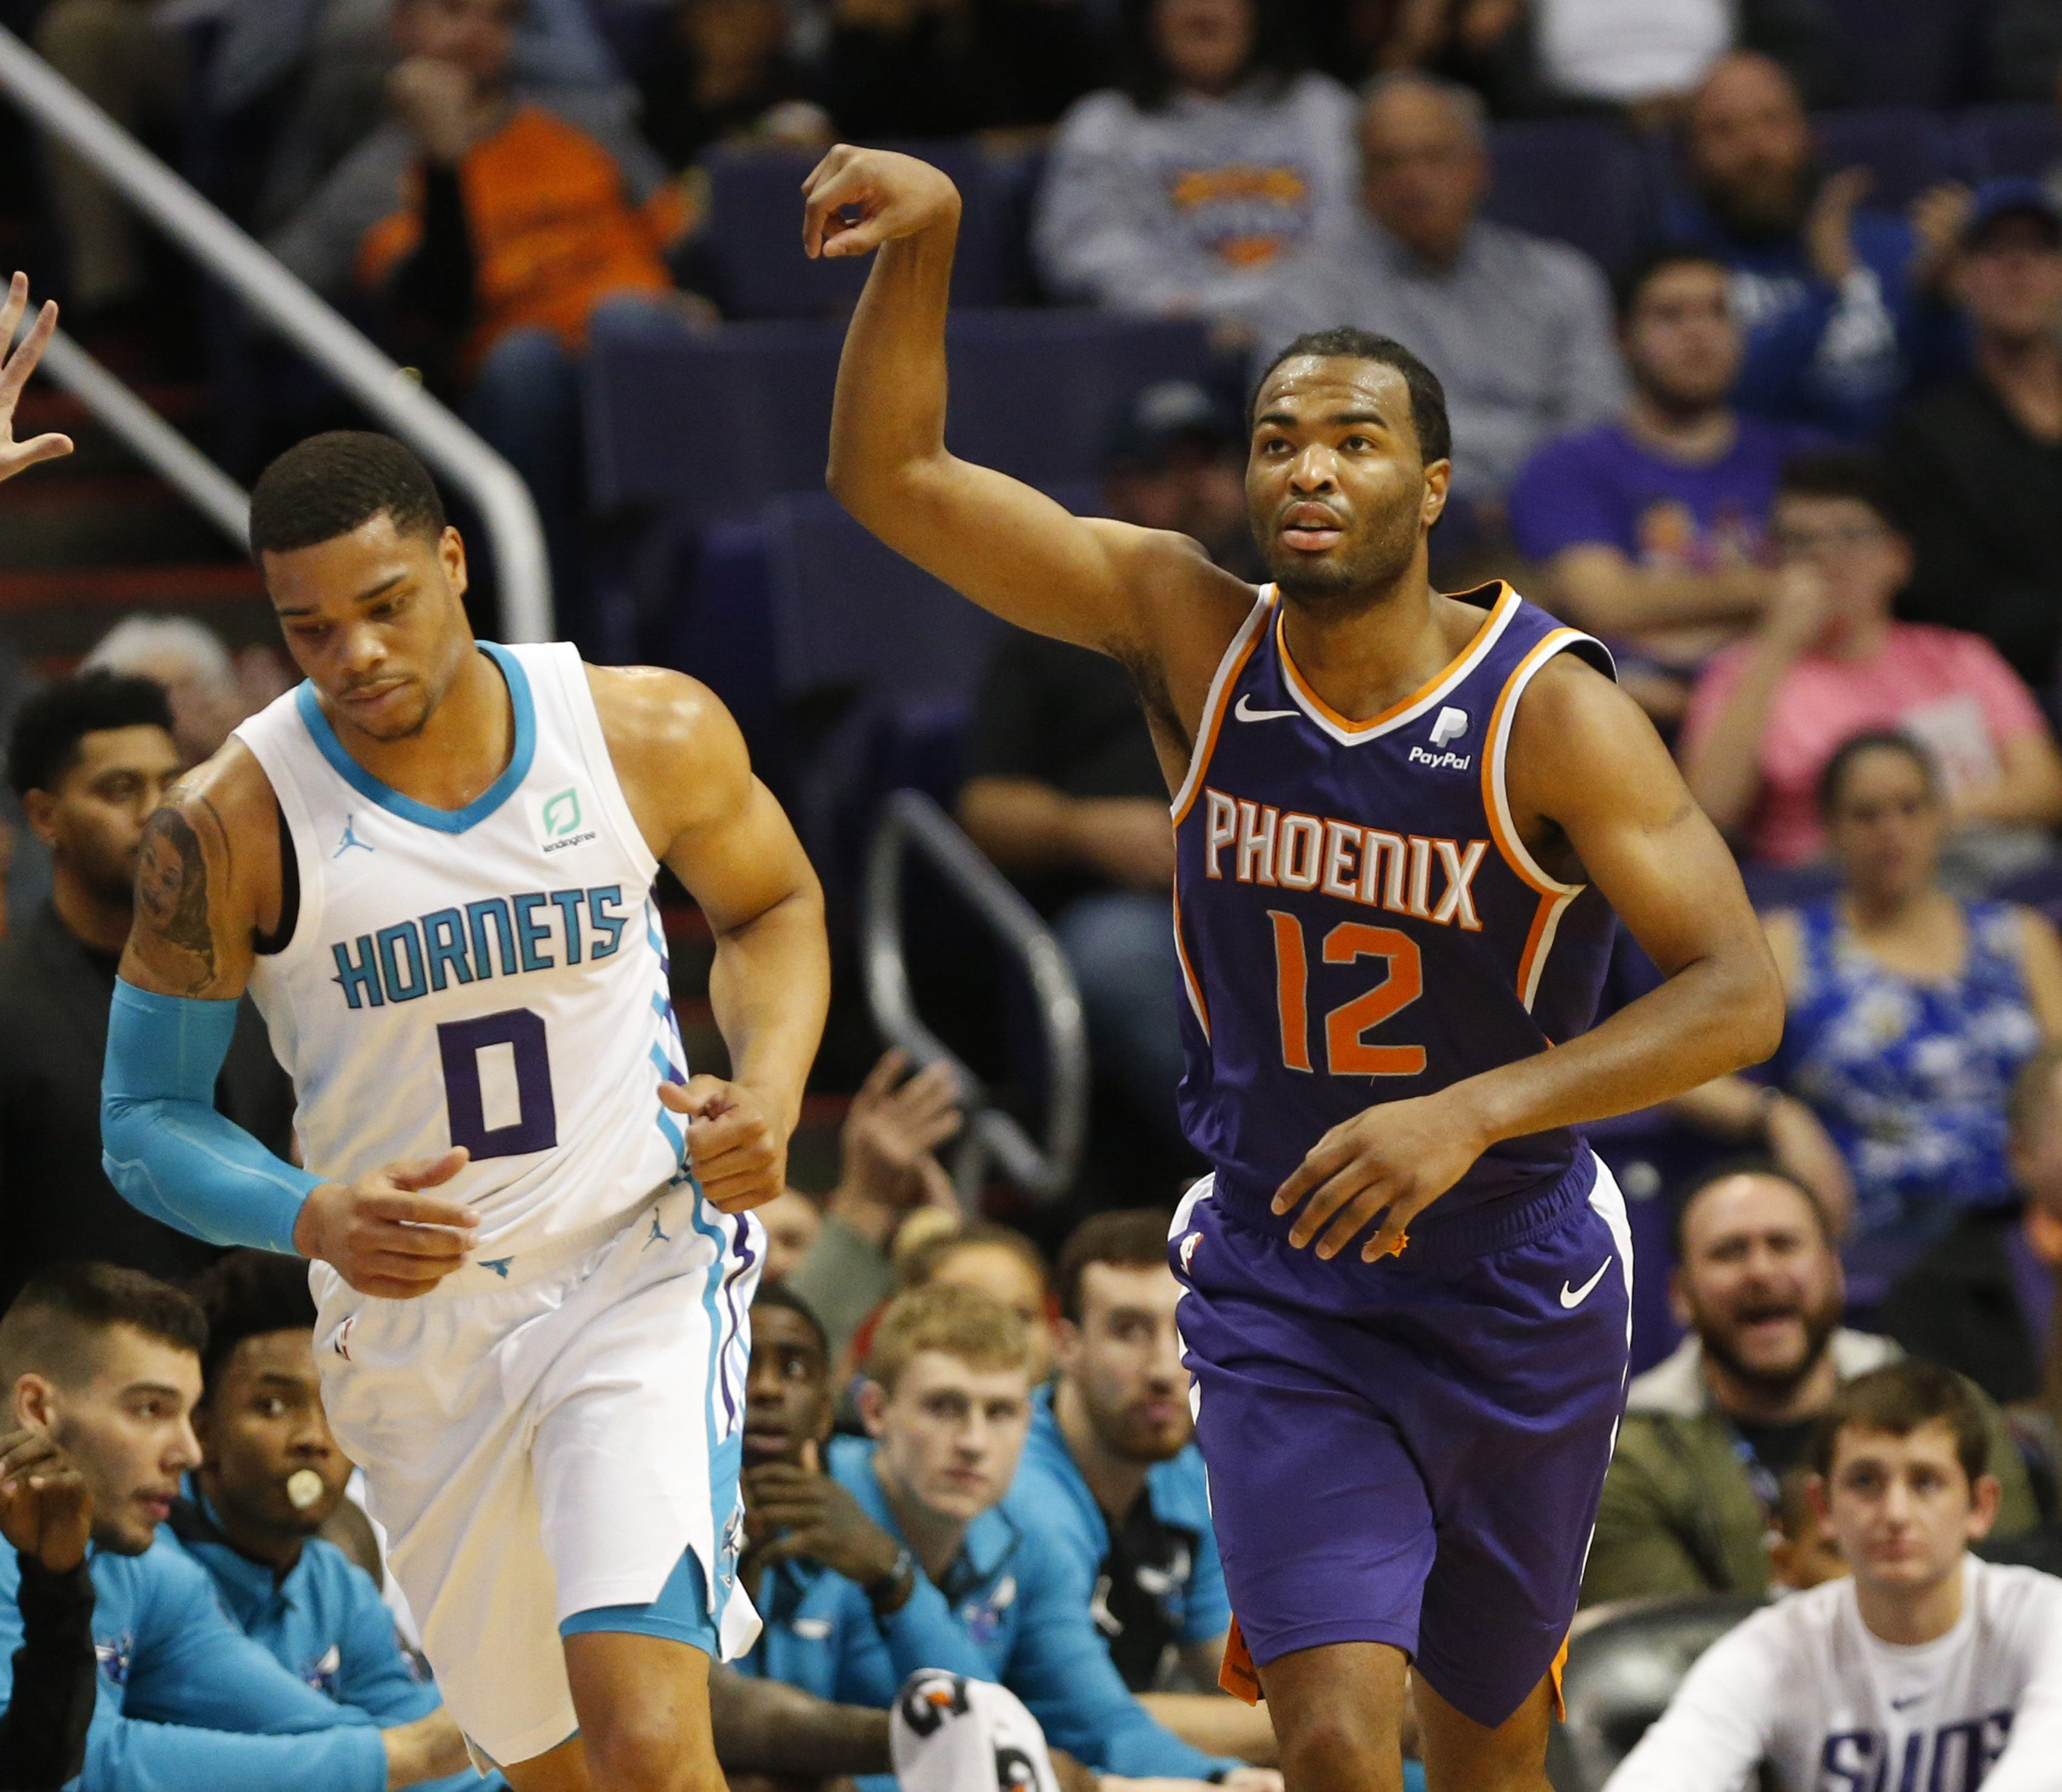 Suns forward T.J. Warren making quiet improvements this season